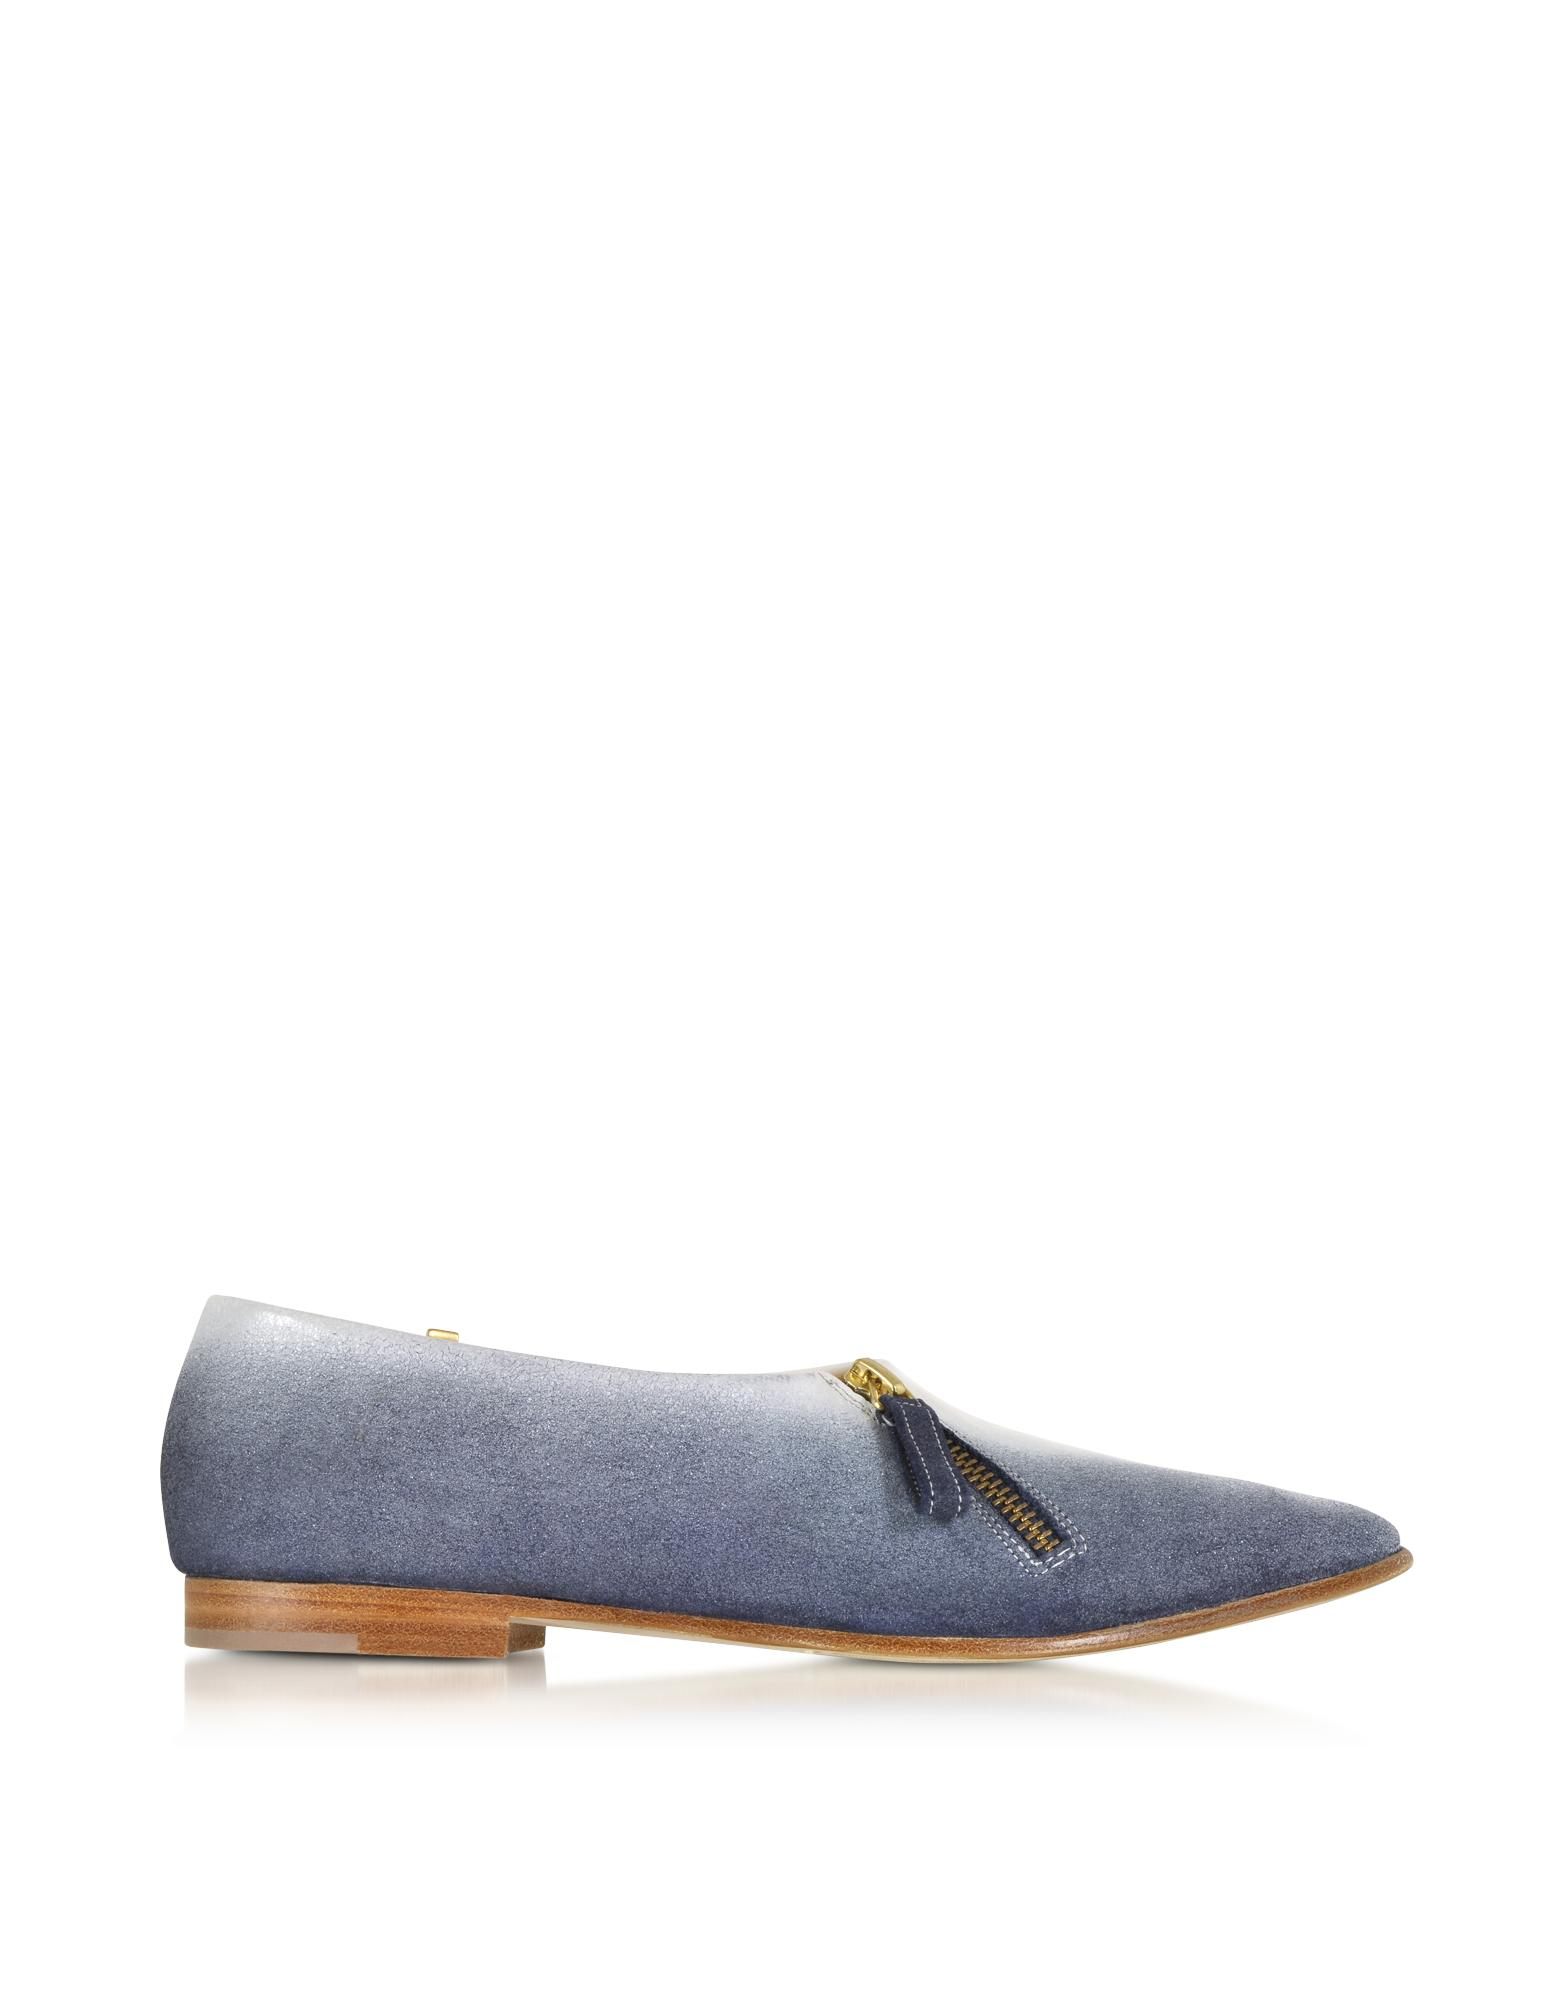 Lafayette Blue Suede and White Patent Leather Loafer - Zoe Lee